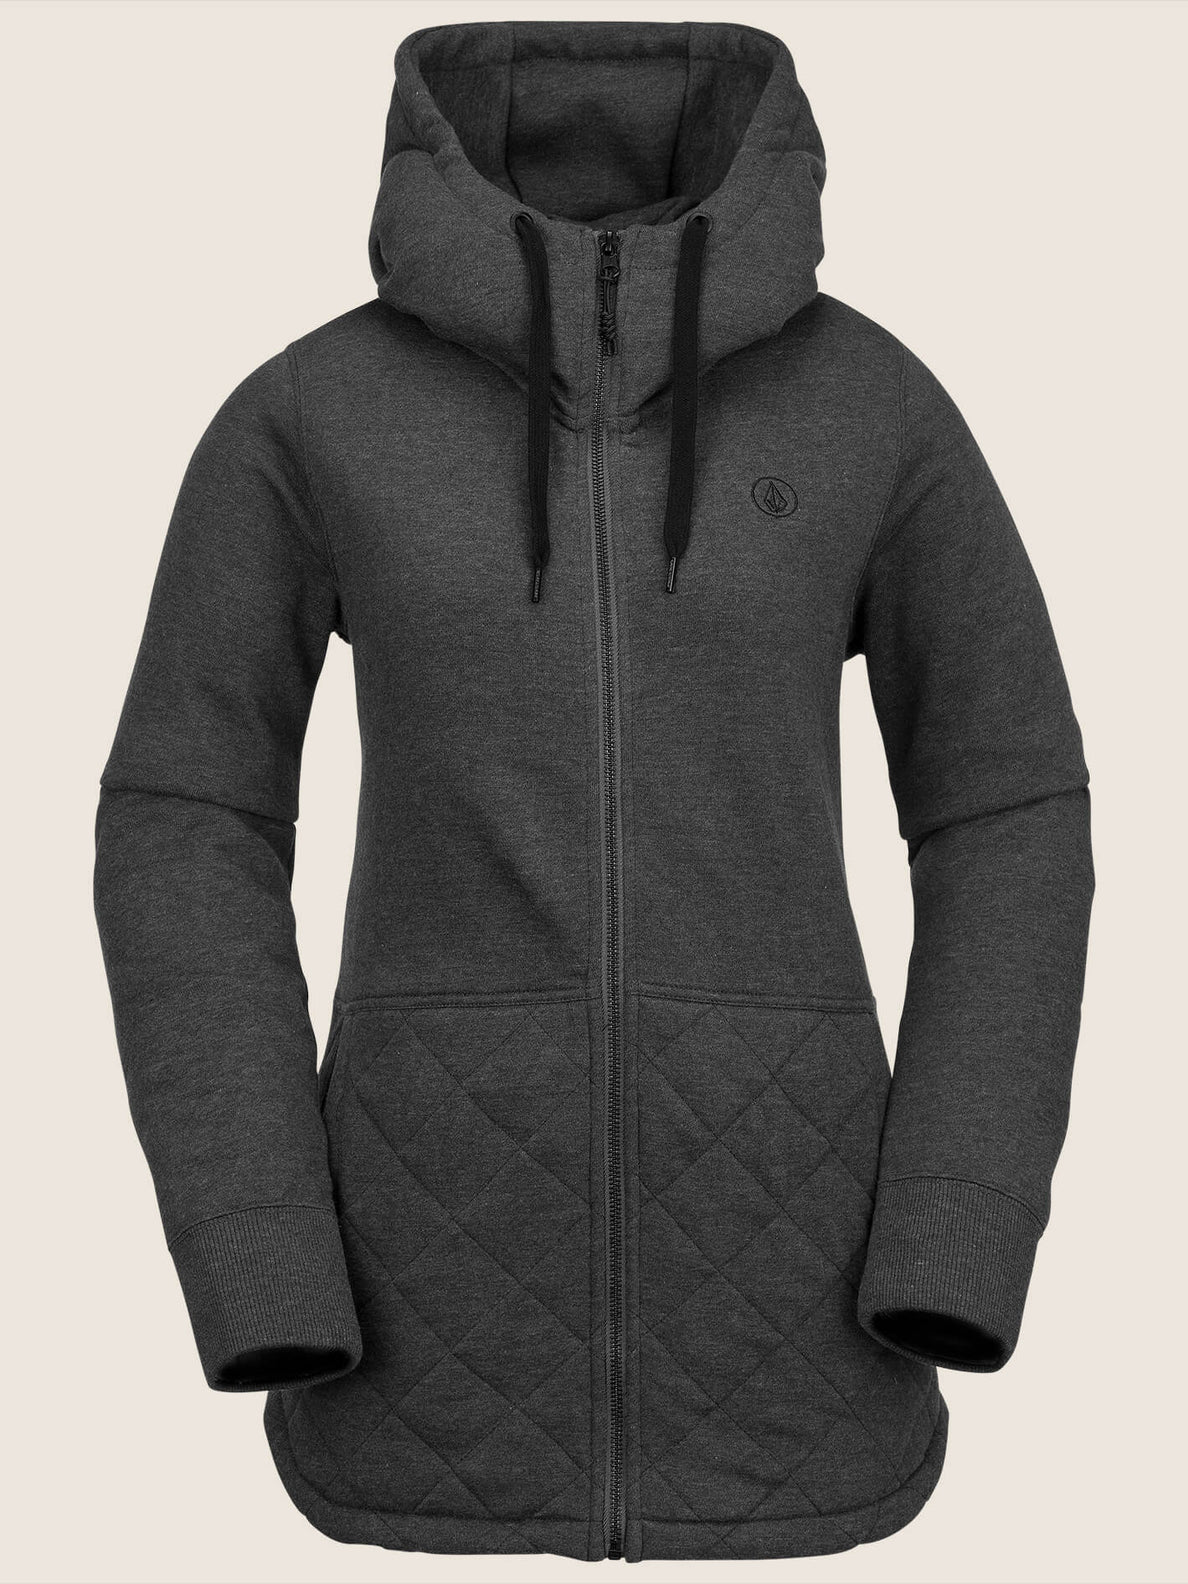 Winrose Fleece In Vintage Black, Front View